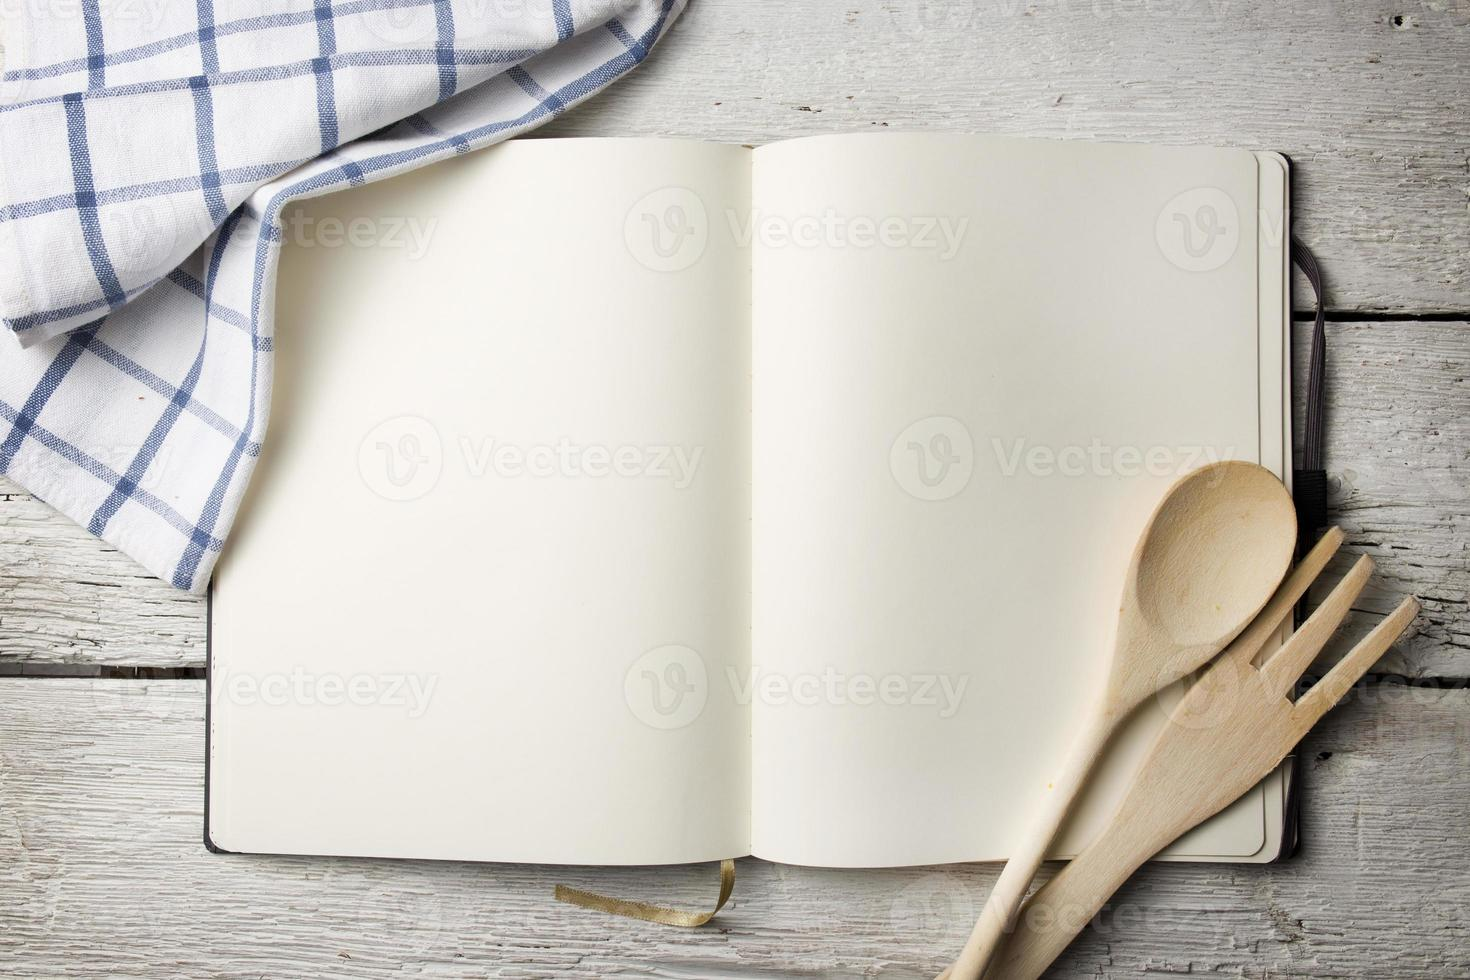 Blank recipe book on wooden table photo